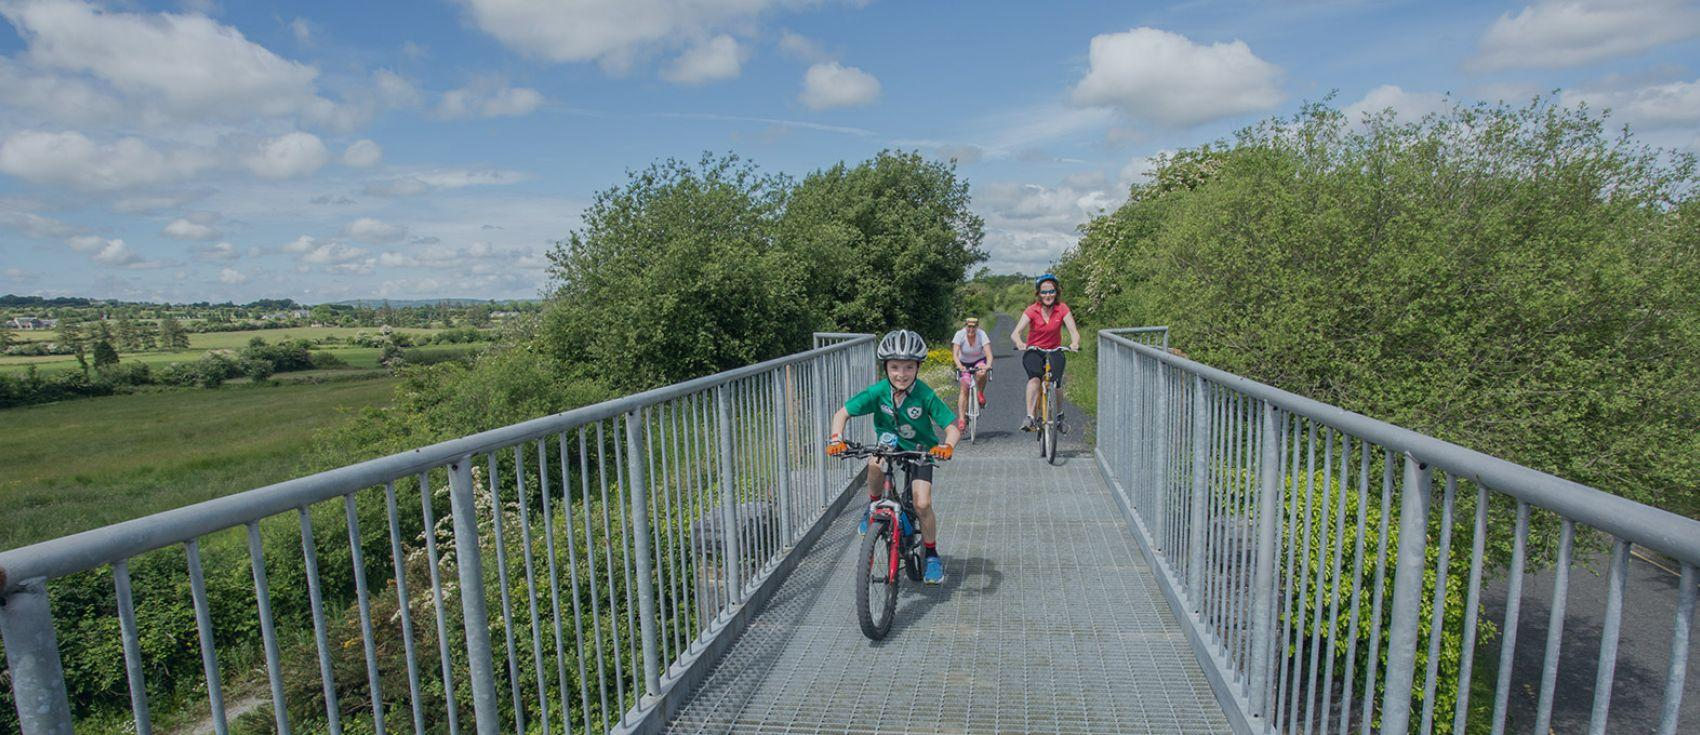 The Great Southern Greenway Limerick